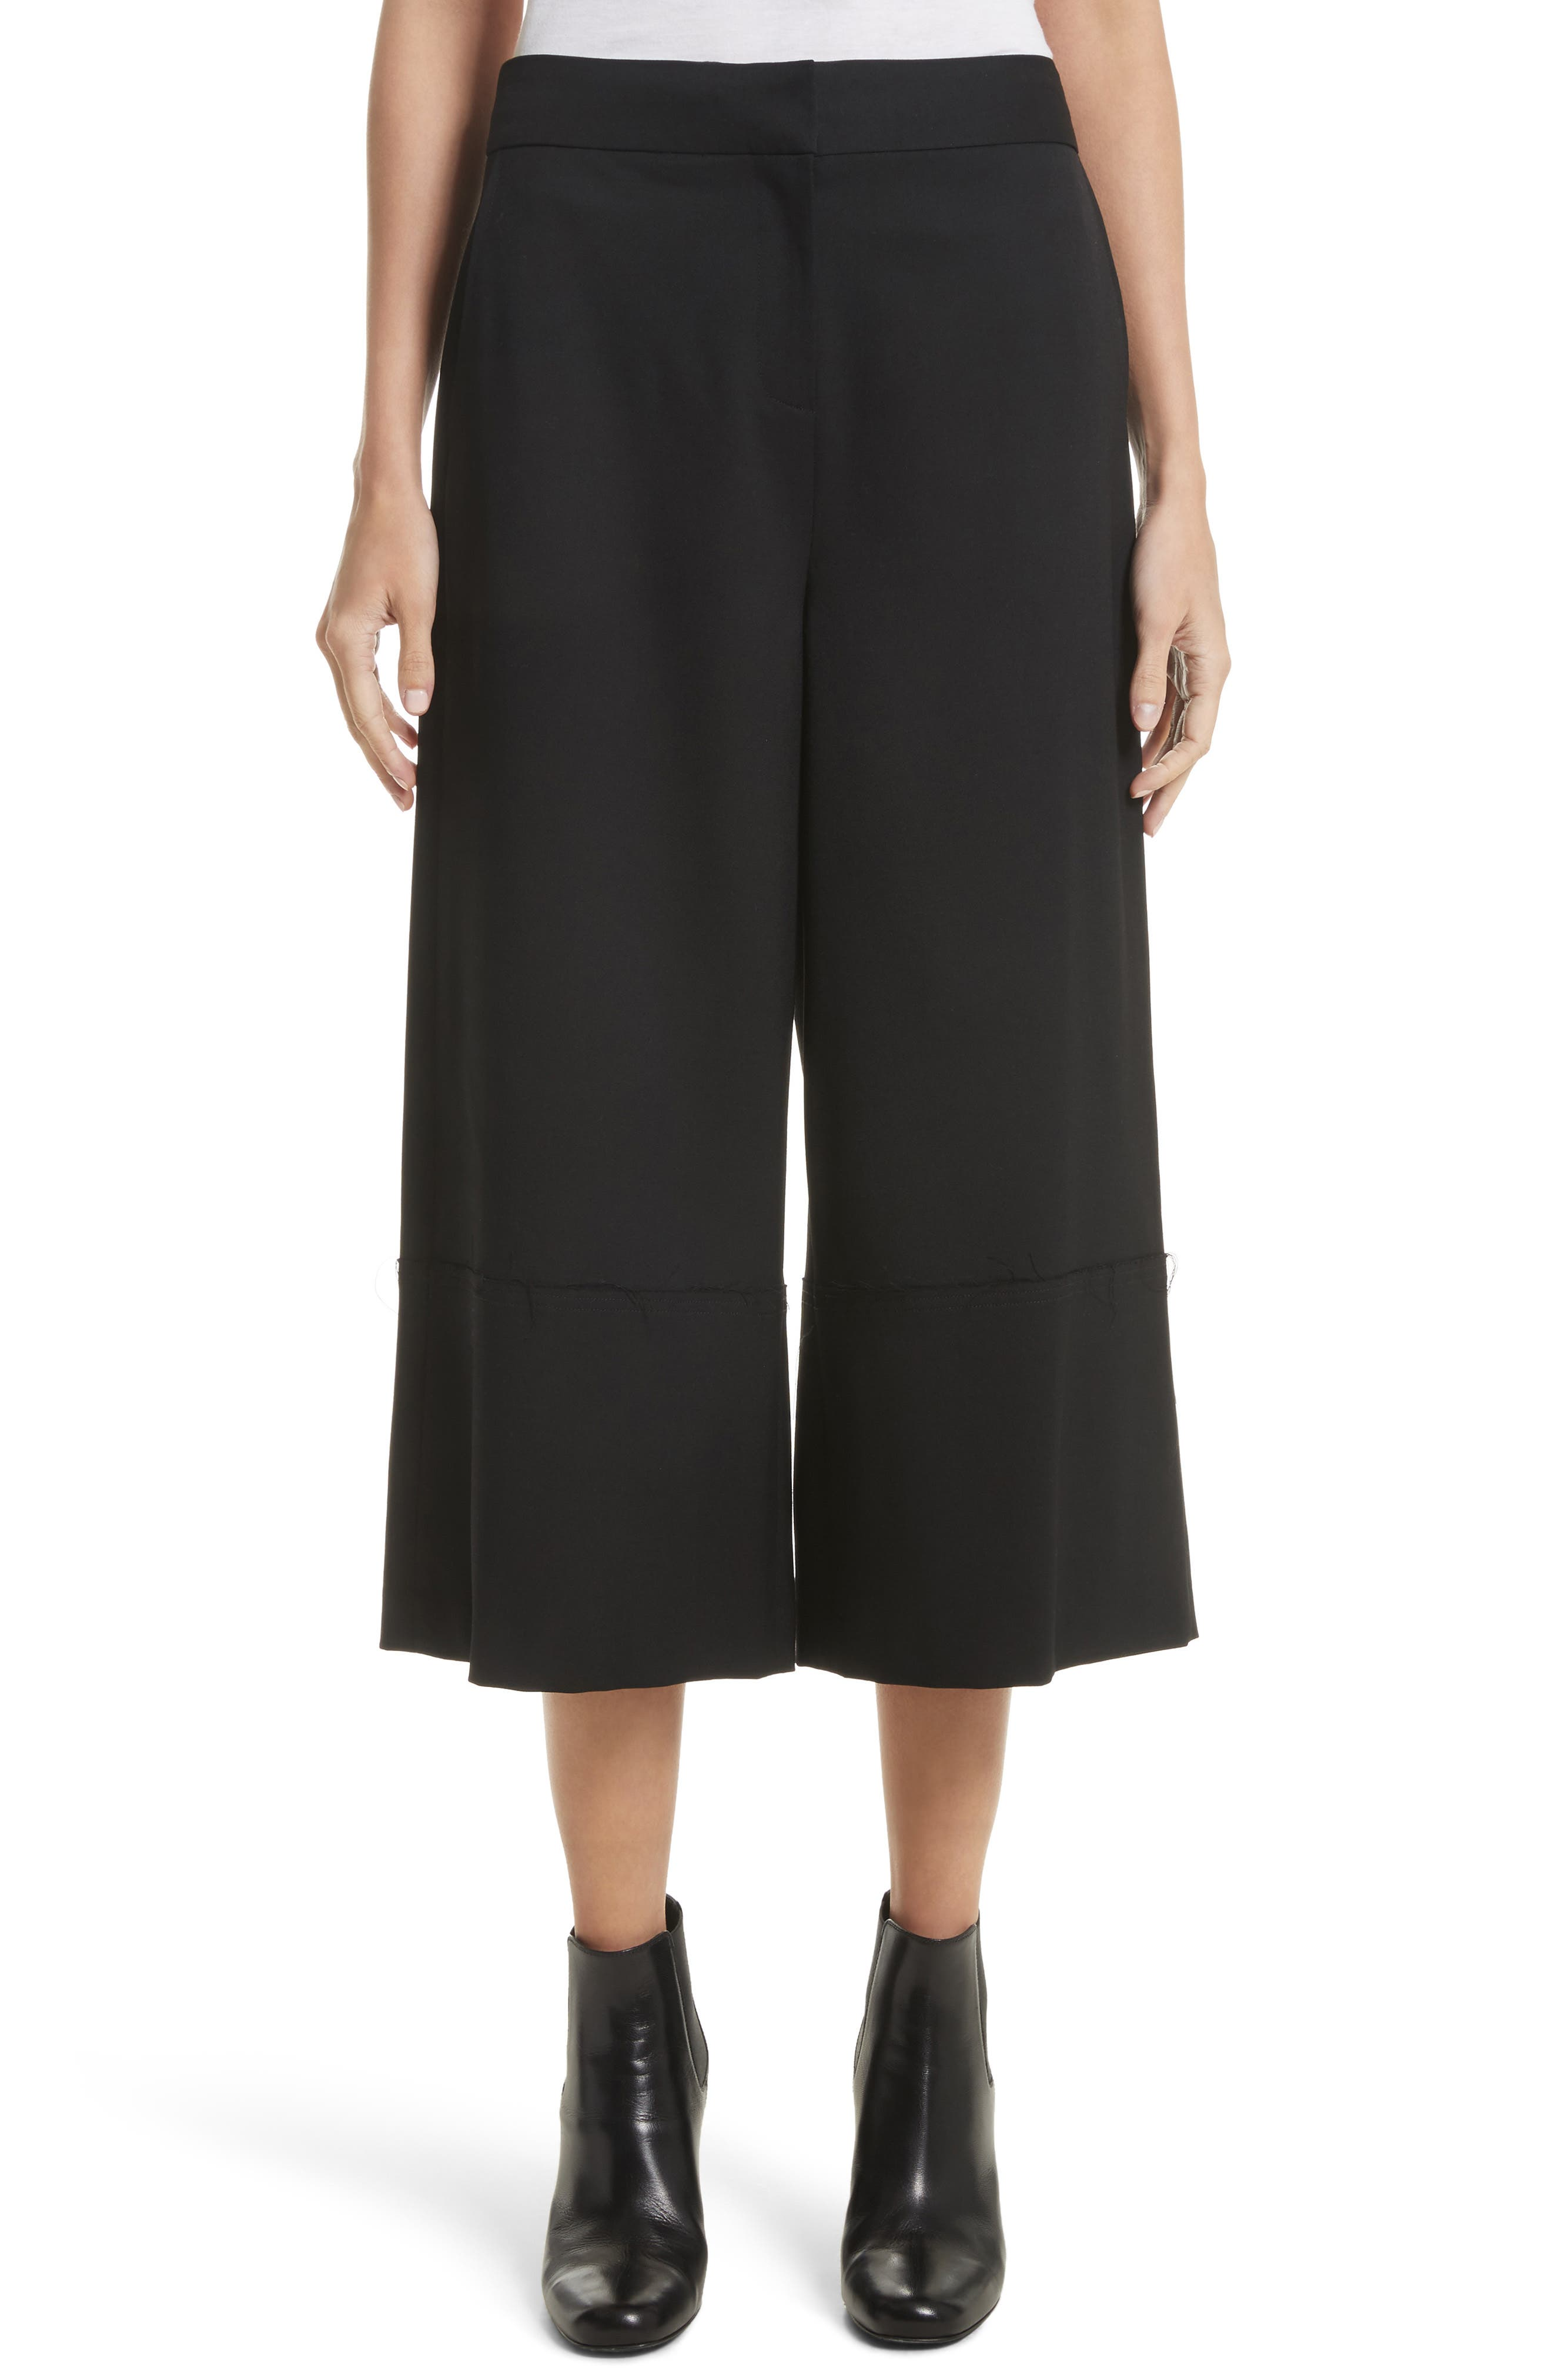 GREY Jason Wu High Waist Culottes